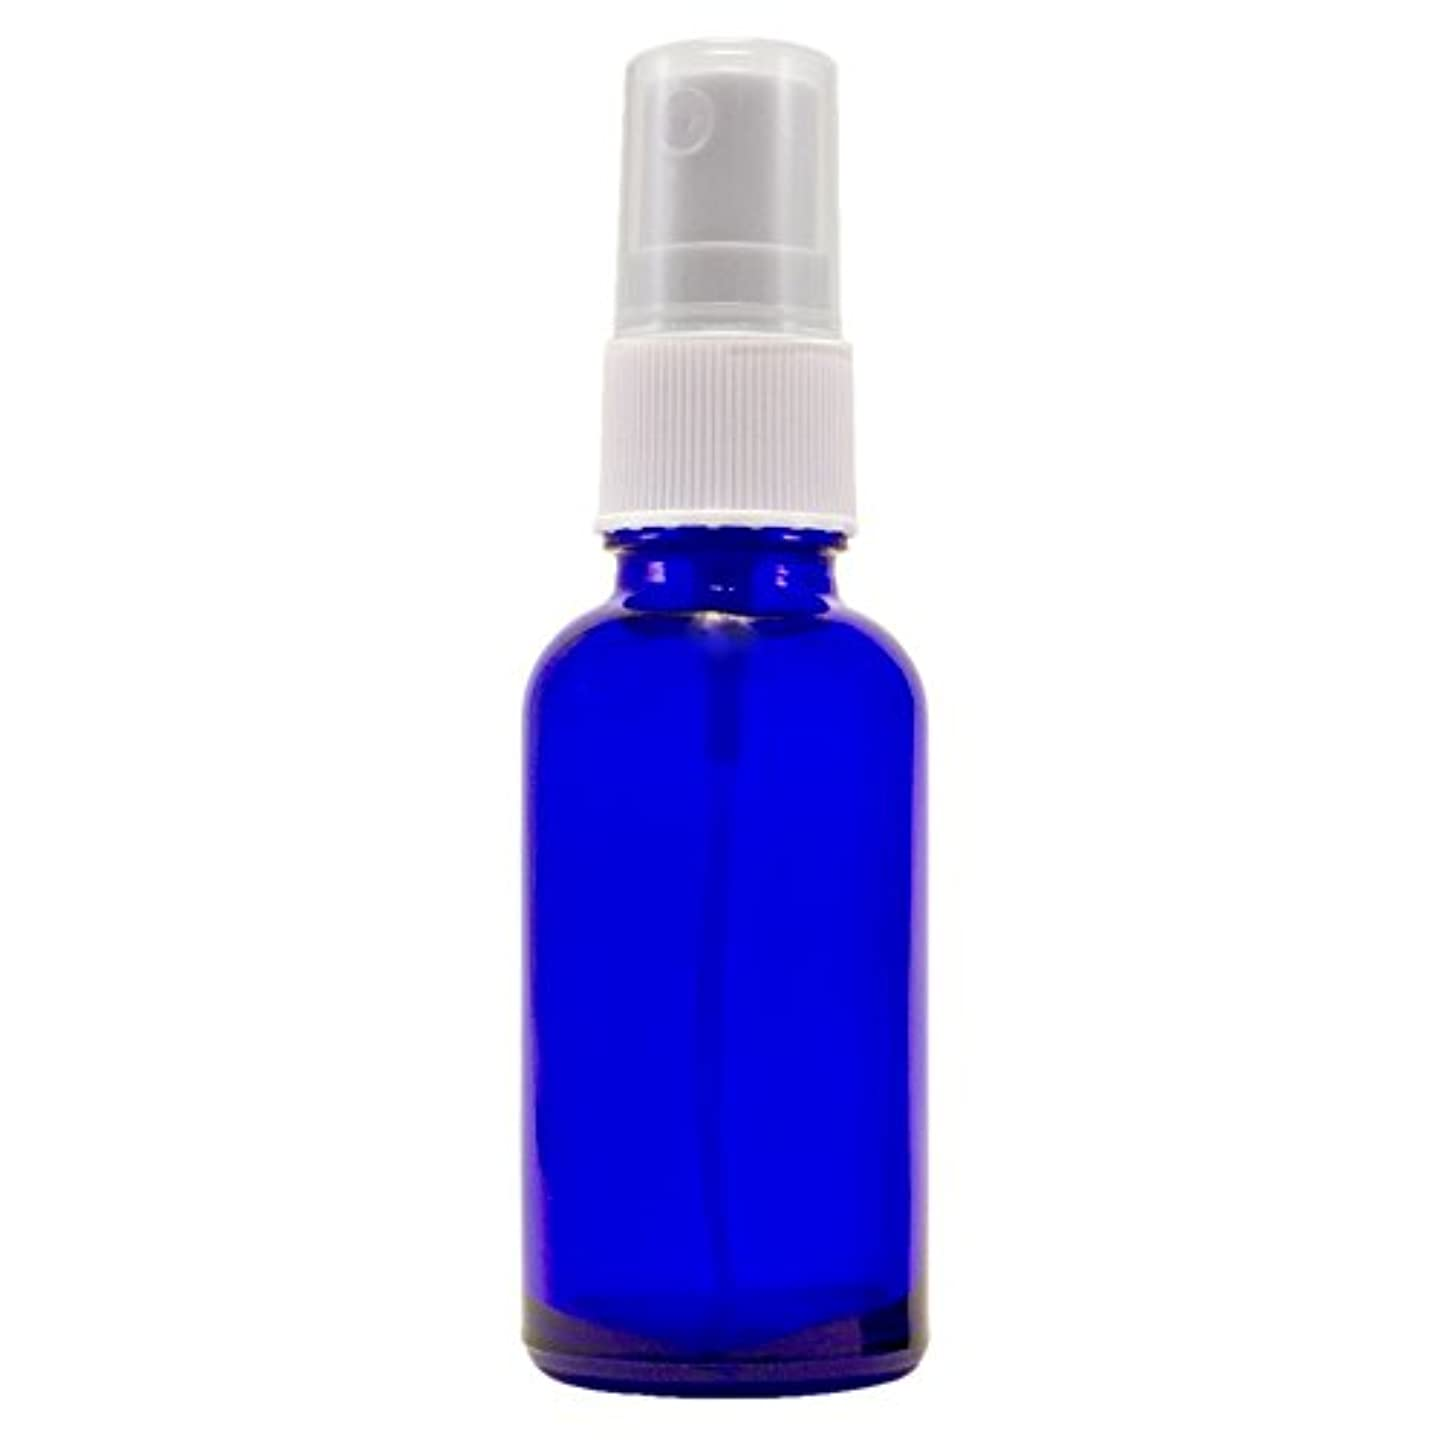 突破口踏みつけローブWyndmere Naturals - Glass Bottle W/mist Sprayer 4oz, 1 Bottles (1) by Wyndmere Naturals